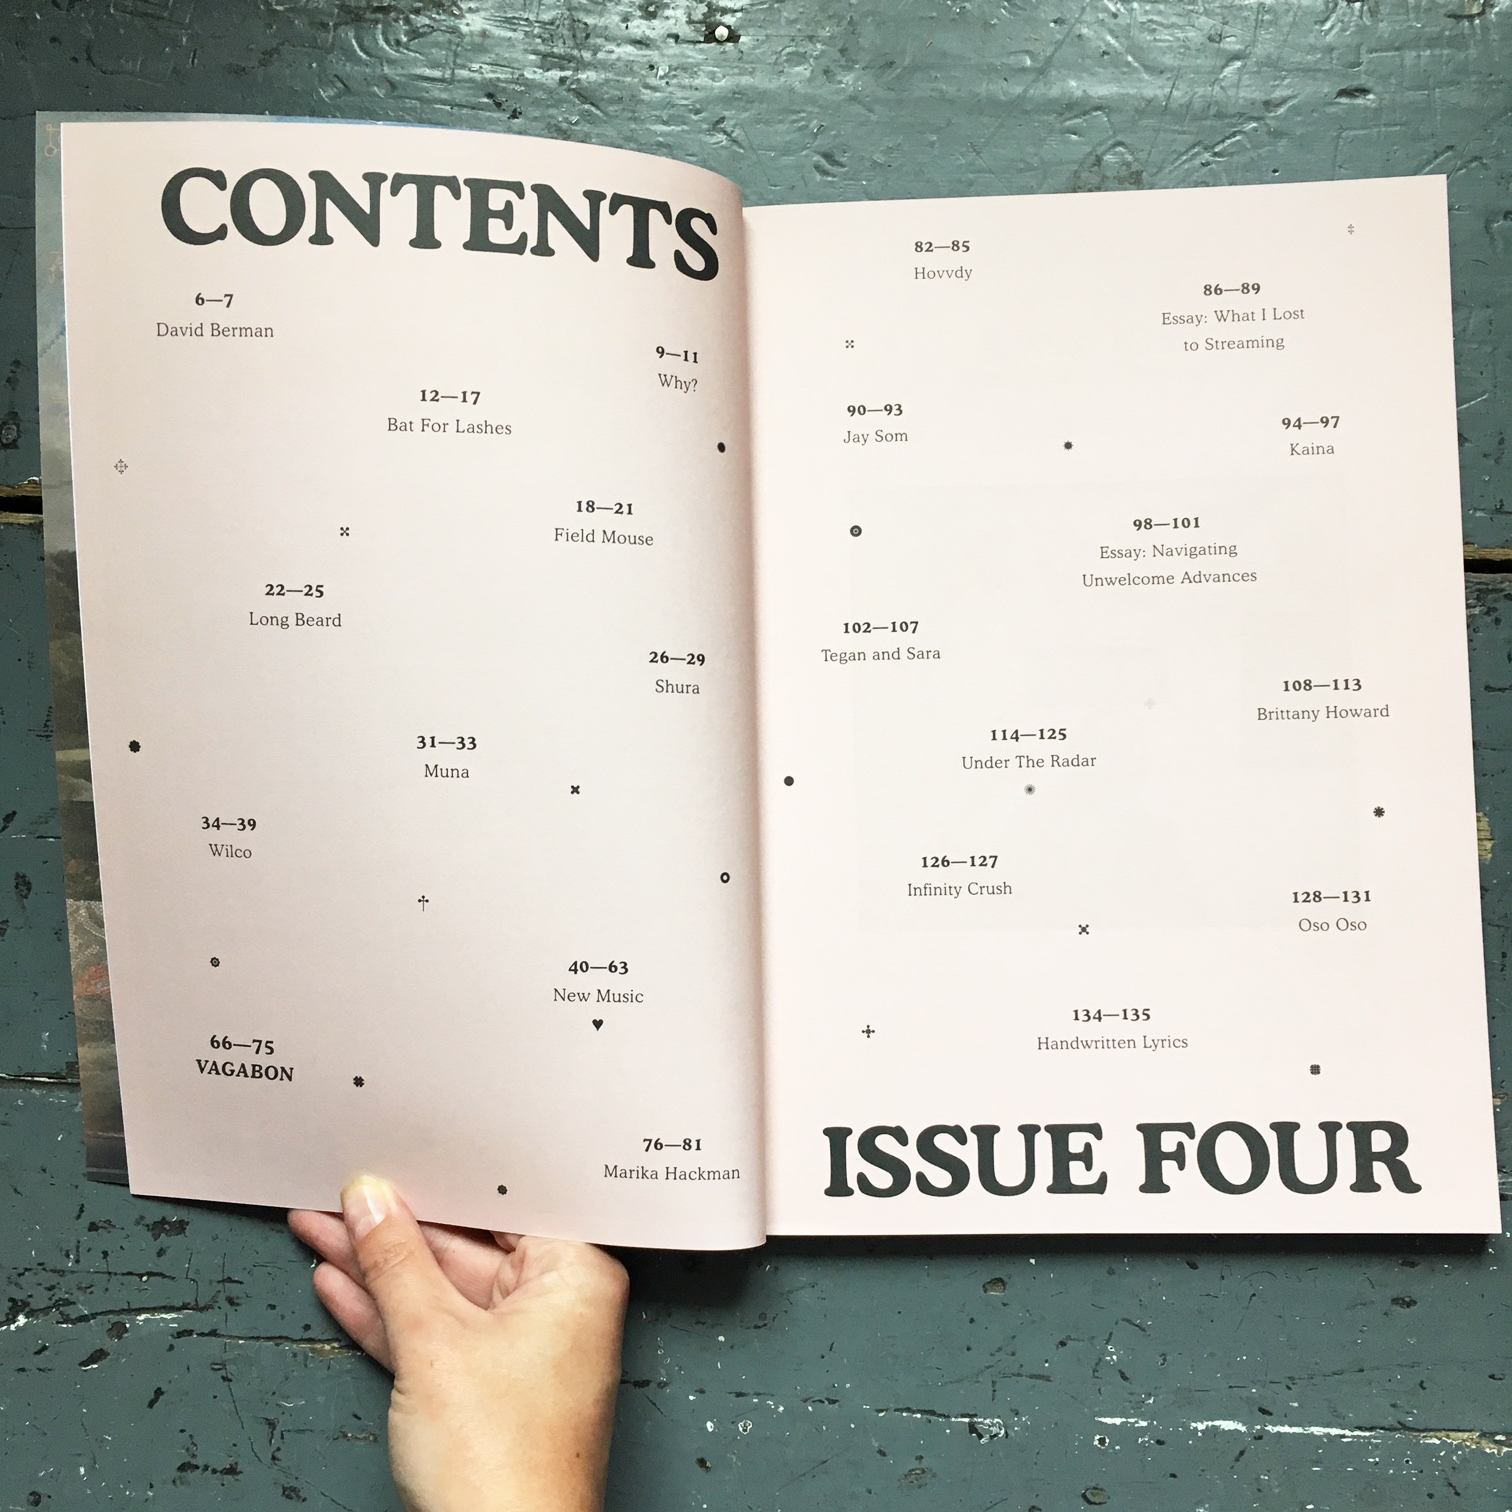 Gold Flake Paint: A Music Journal - issue 4